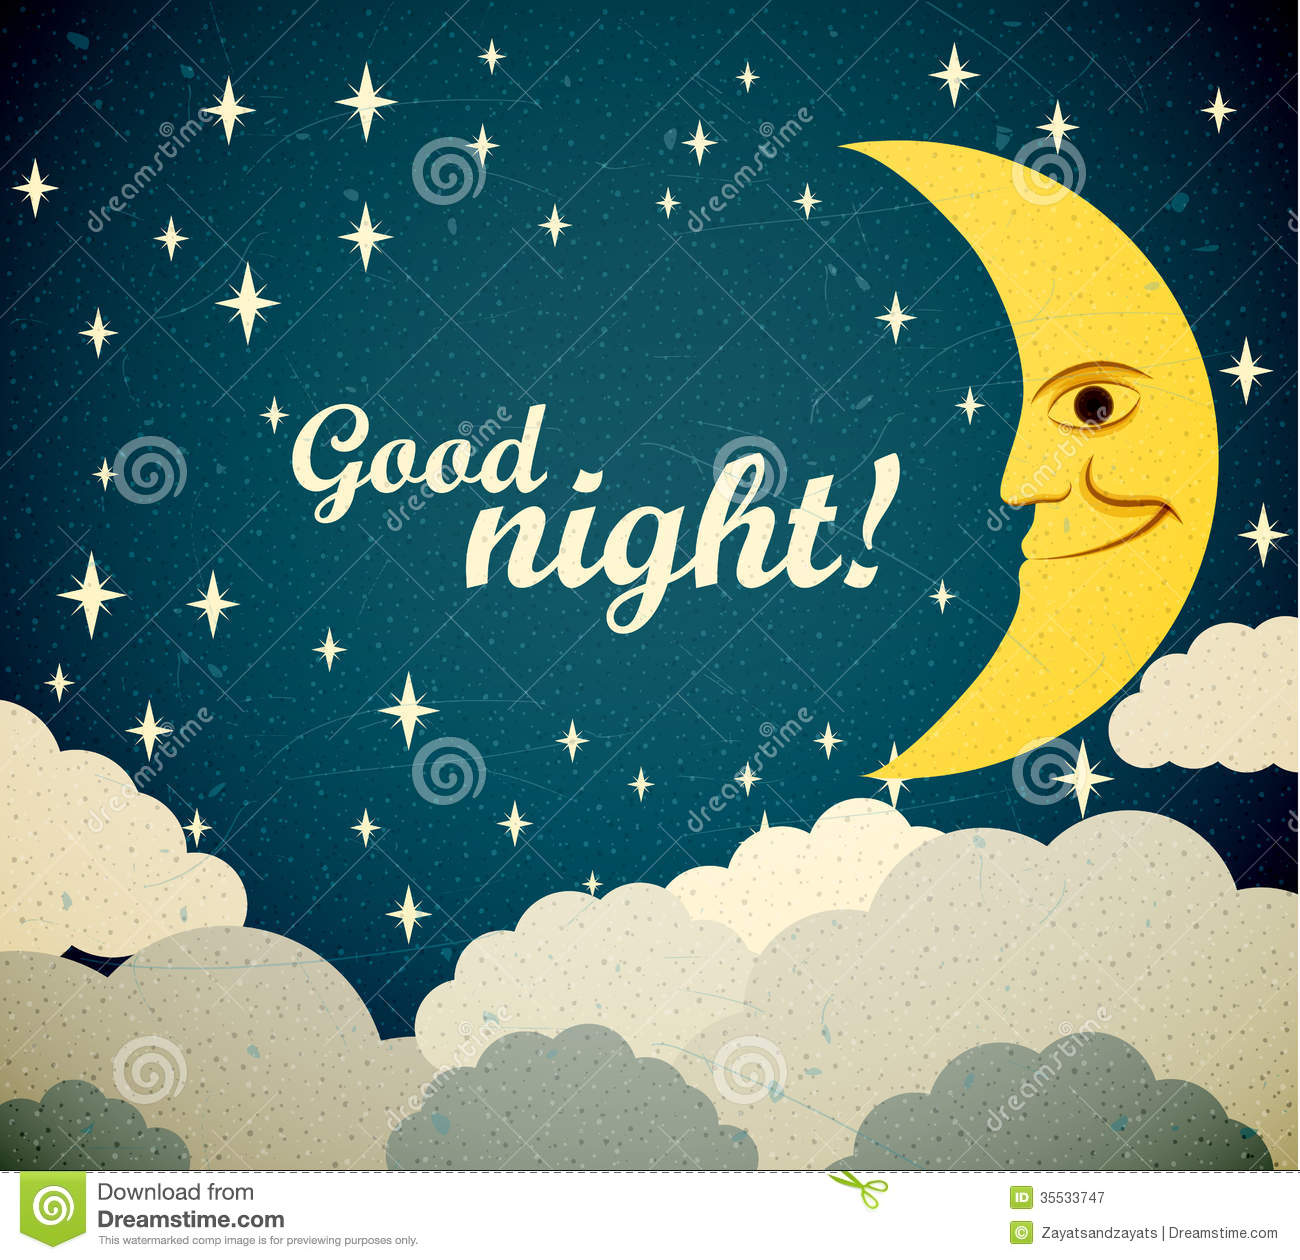 Night photograph clipart #4